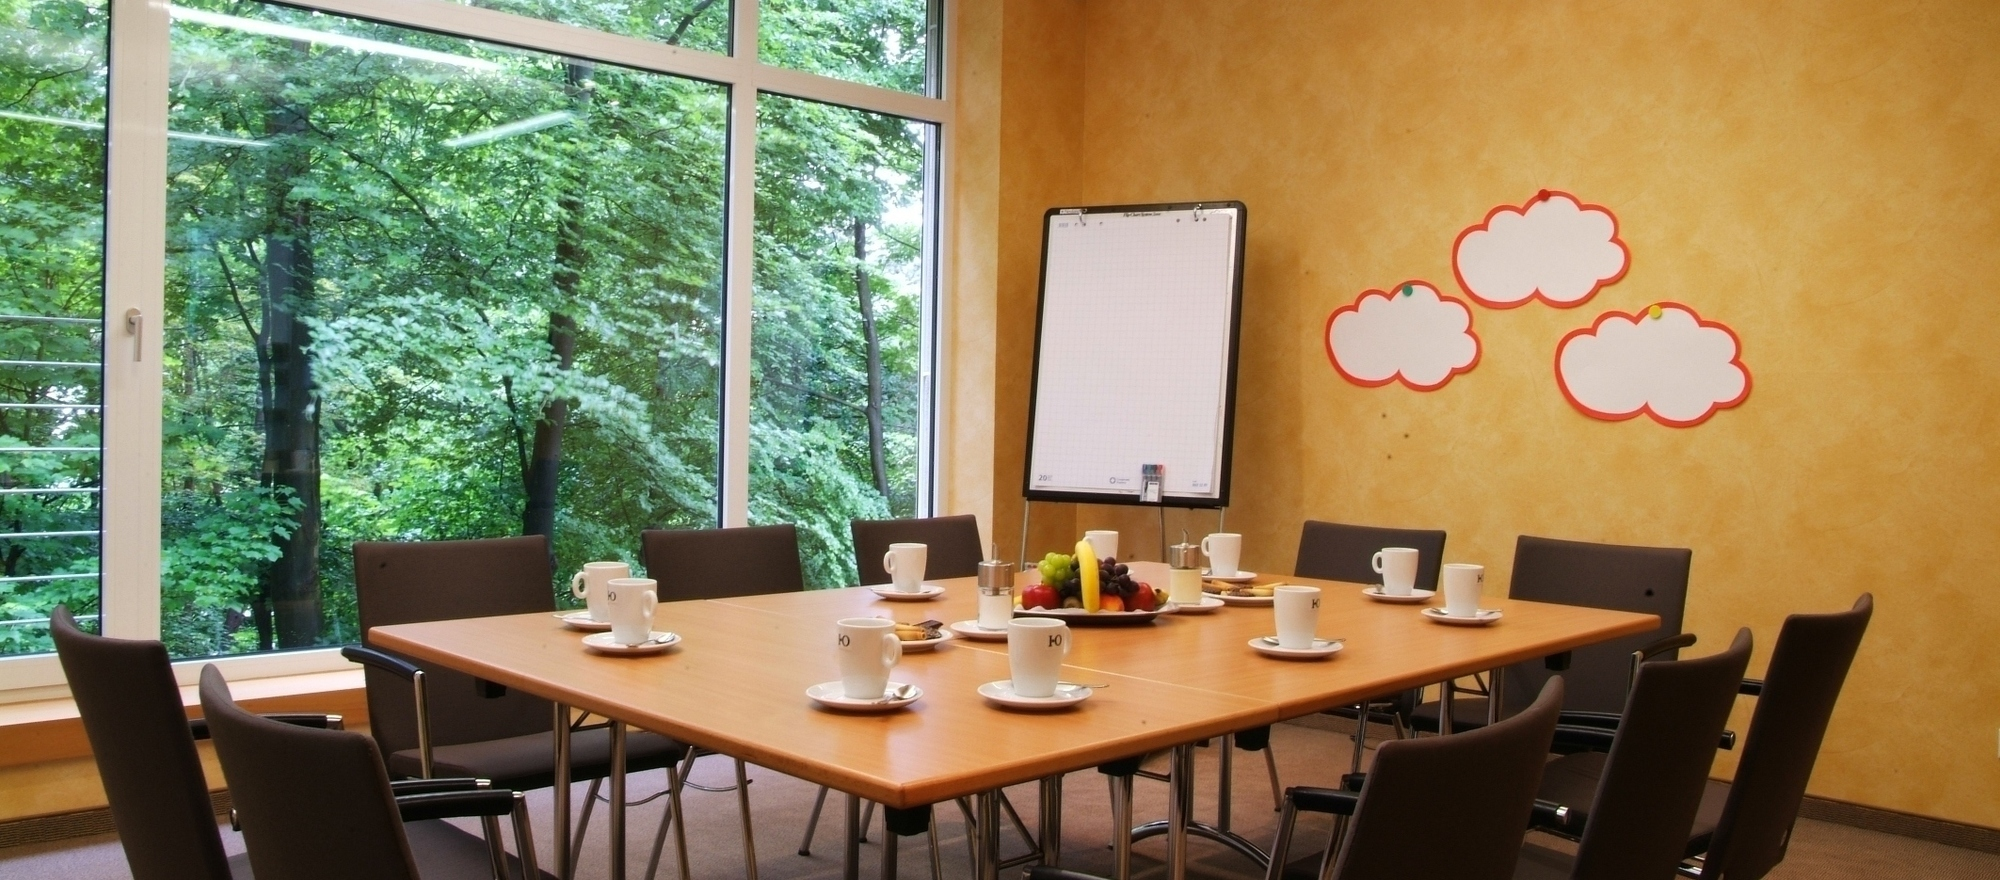 Stylish ambience for events offers the 4-star Ringhotel Waldhotel Heiligenhaus in Heiligenhaus